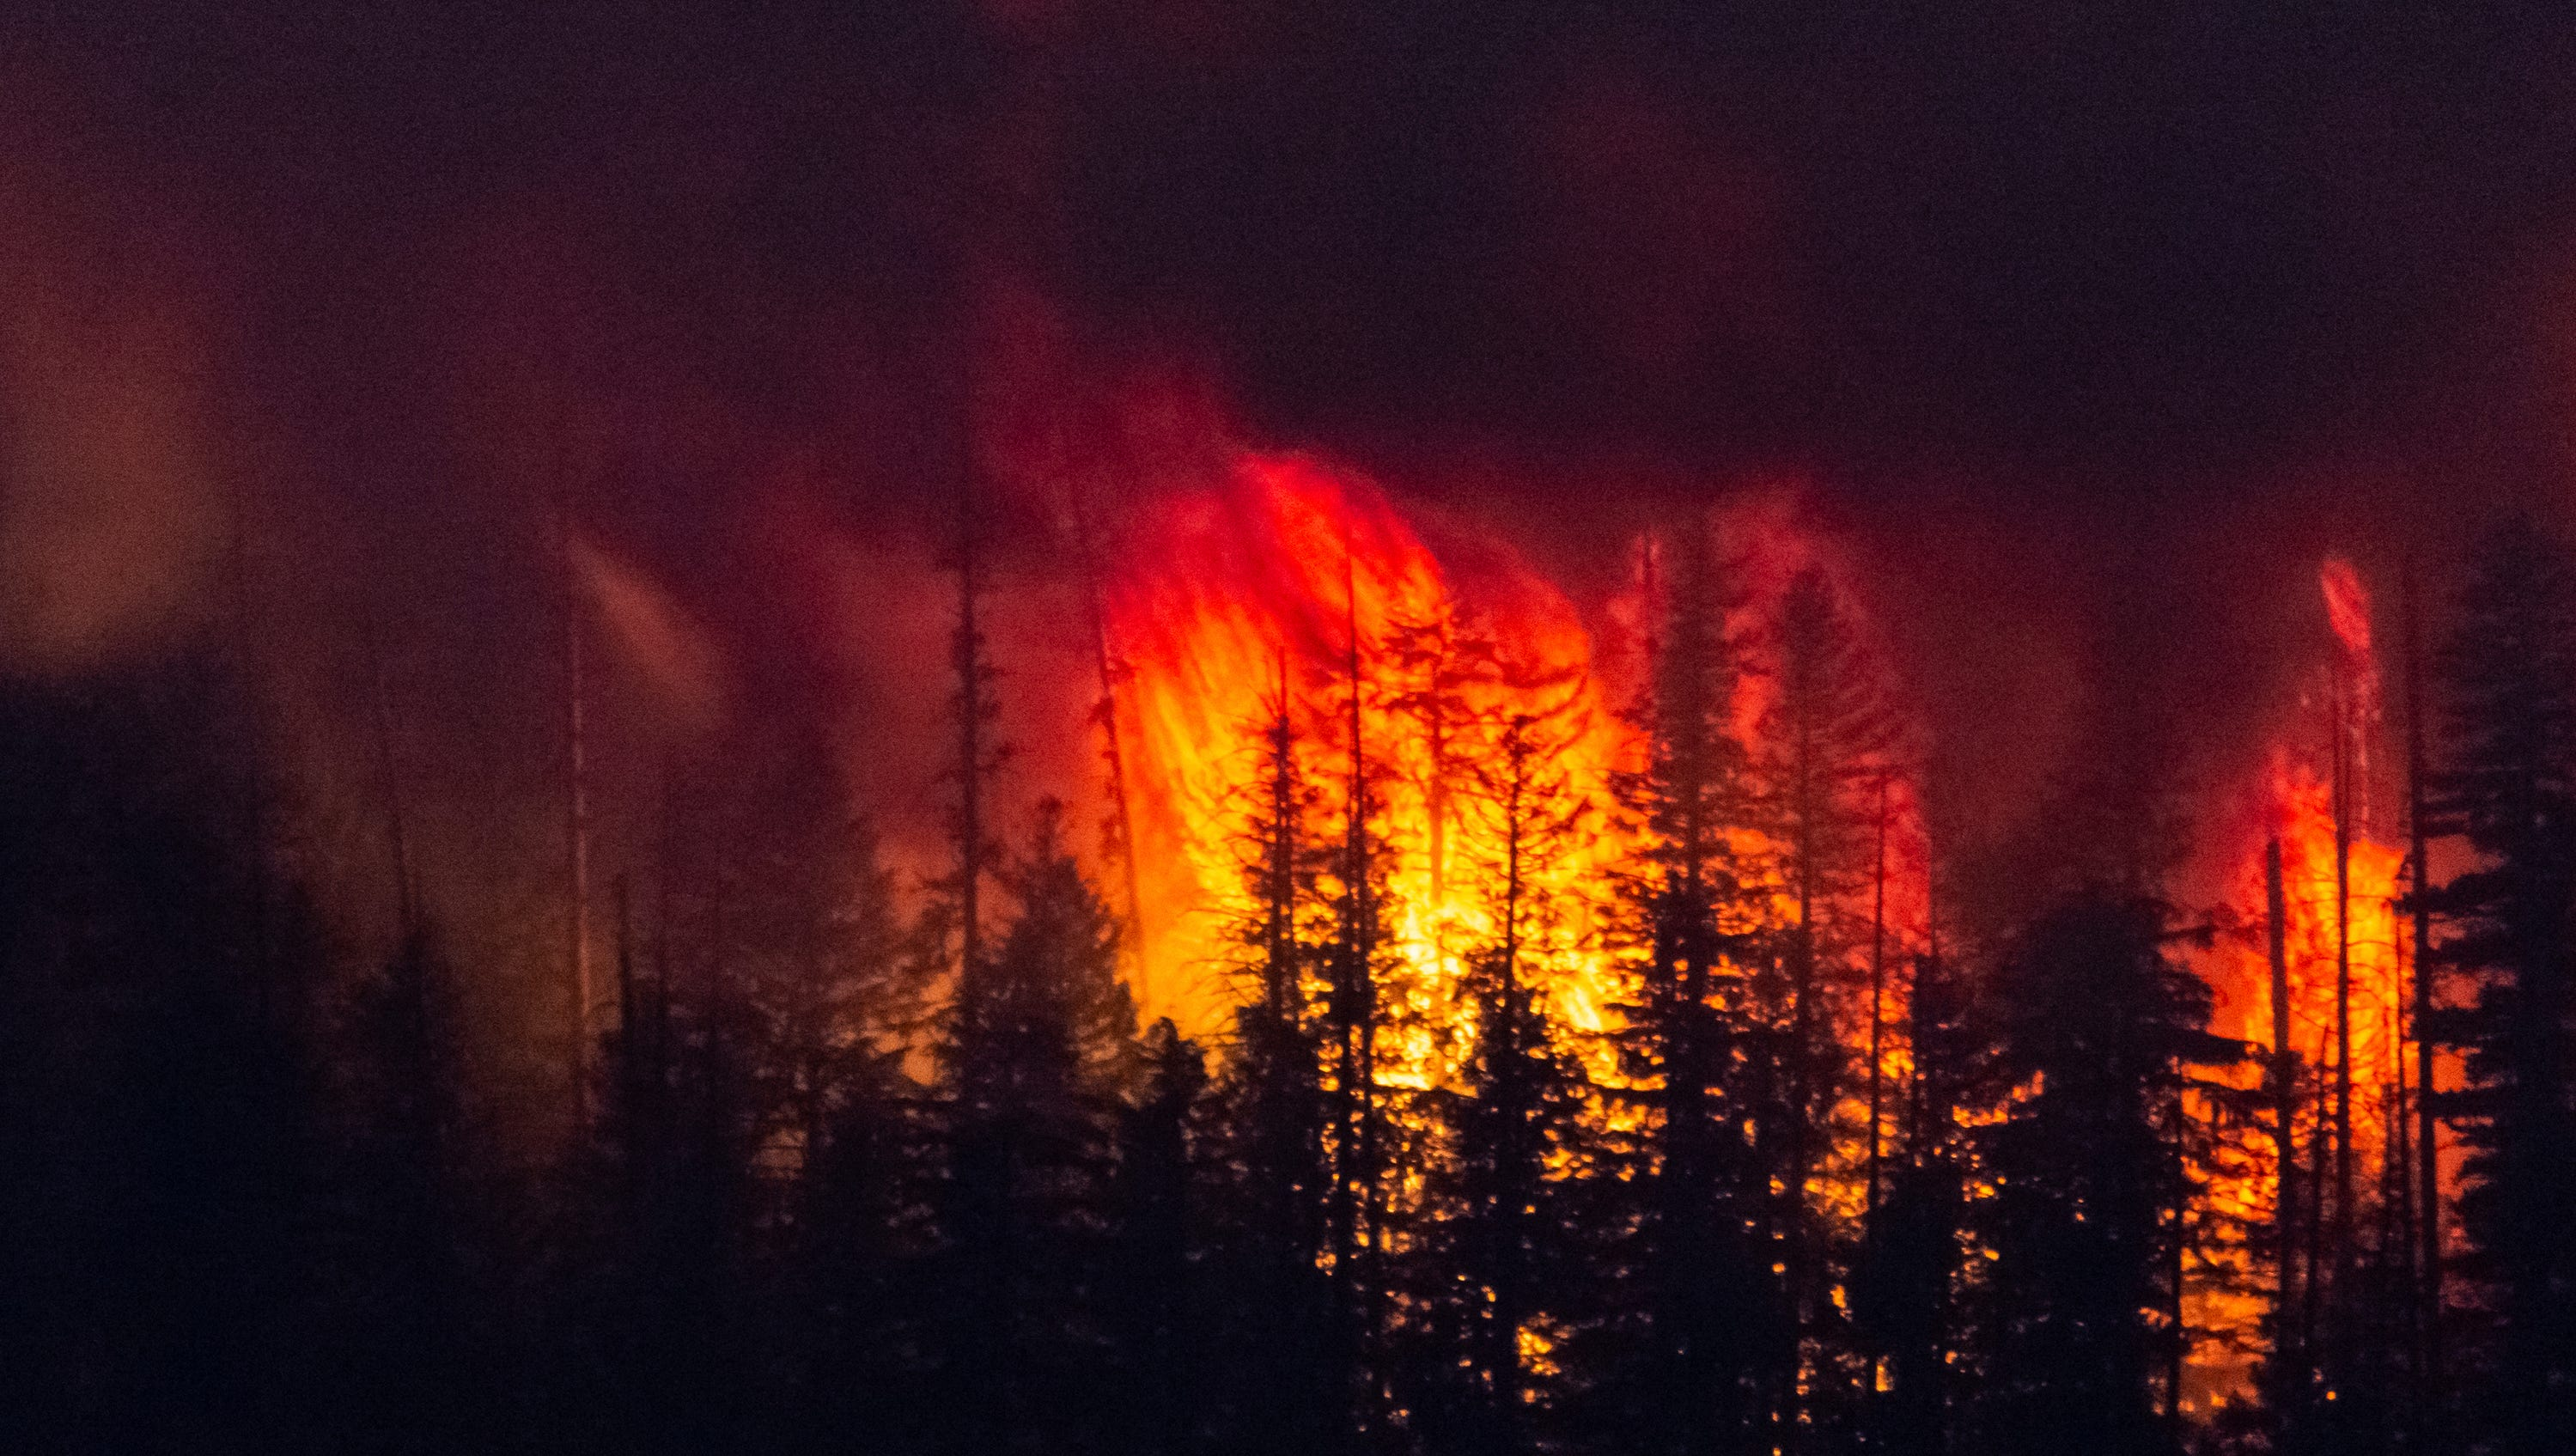 Fires this year have burned 143 square miles acres across Montana, which is about 7 percent of the record 2,134 square miles that burned in 2017.